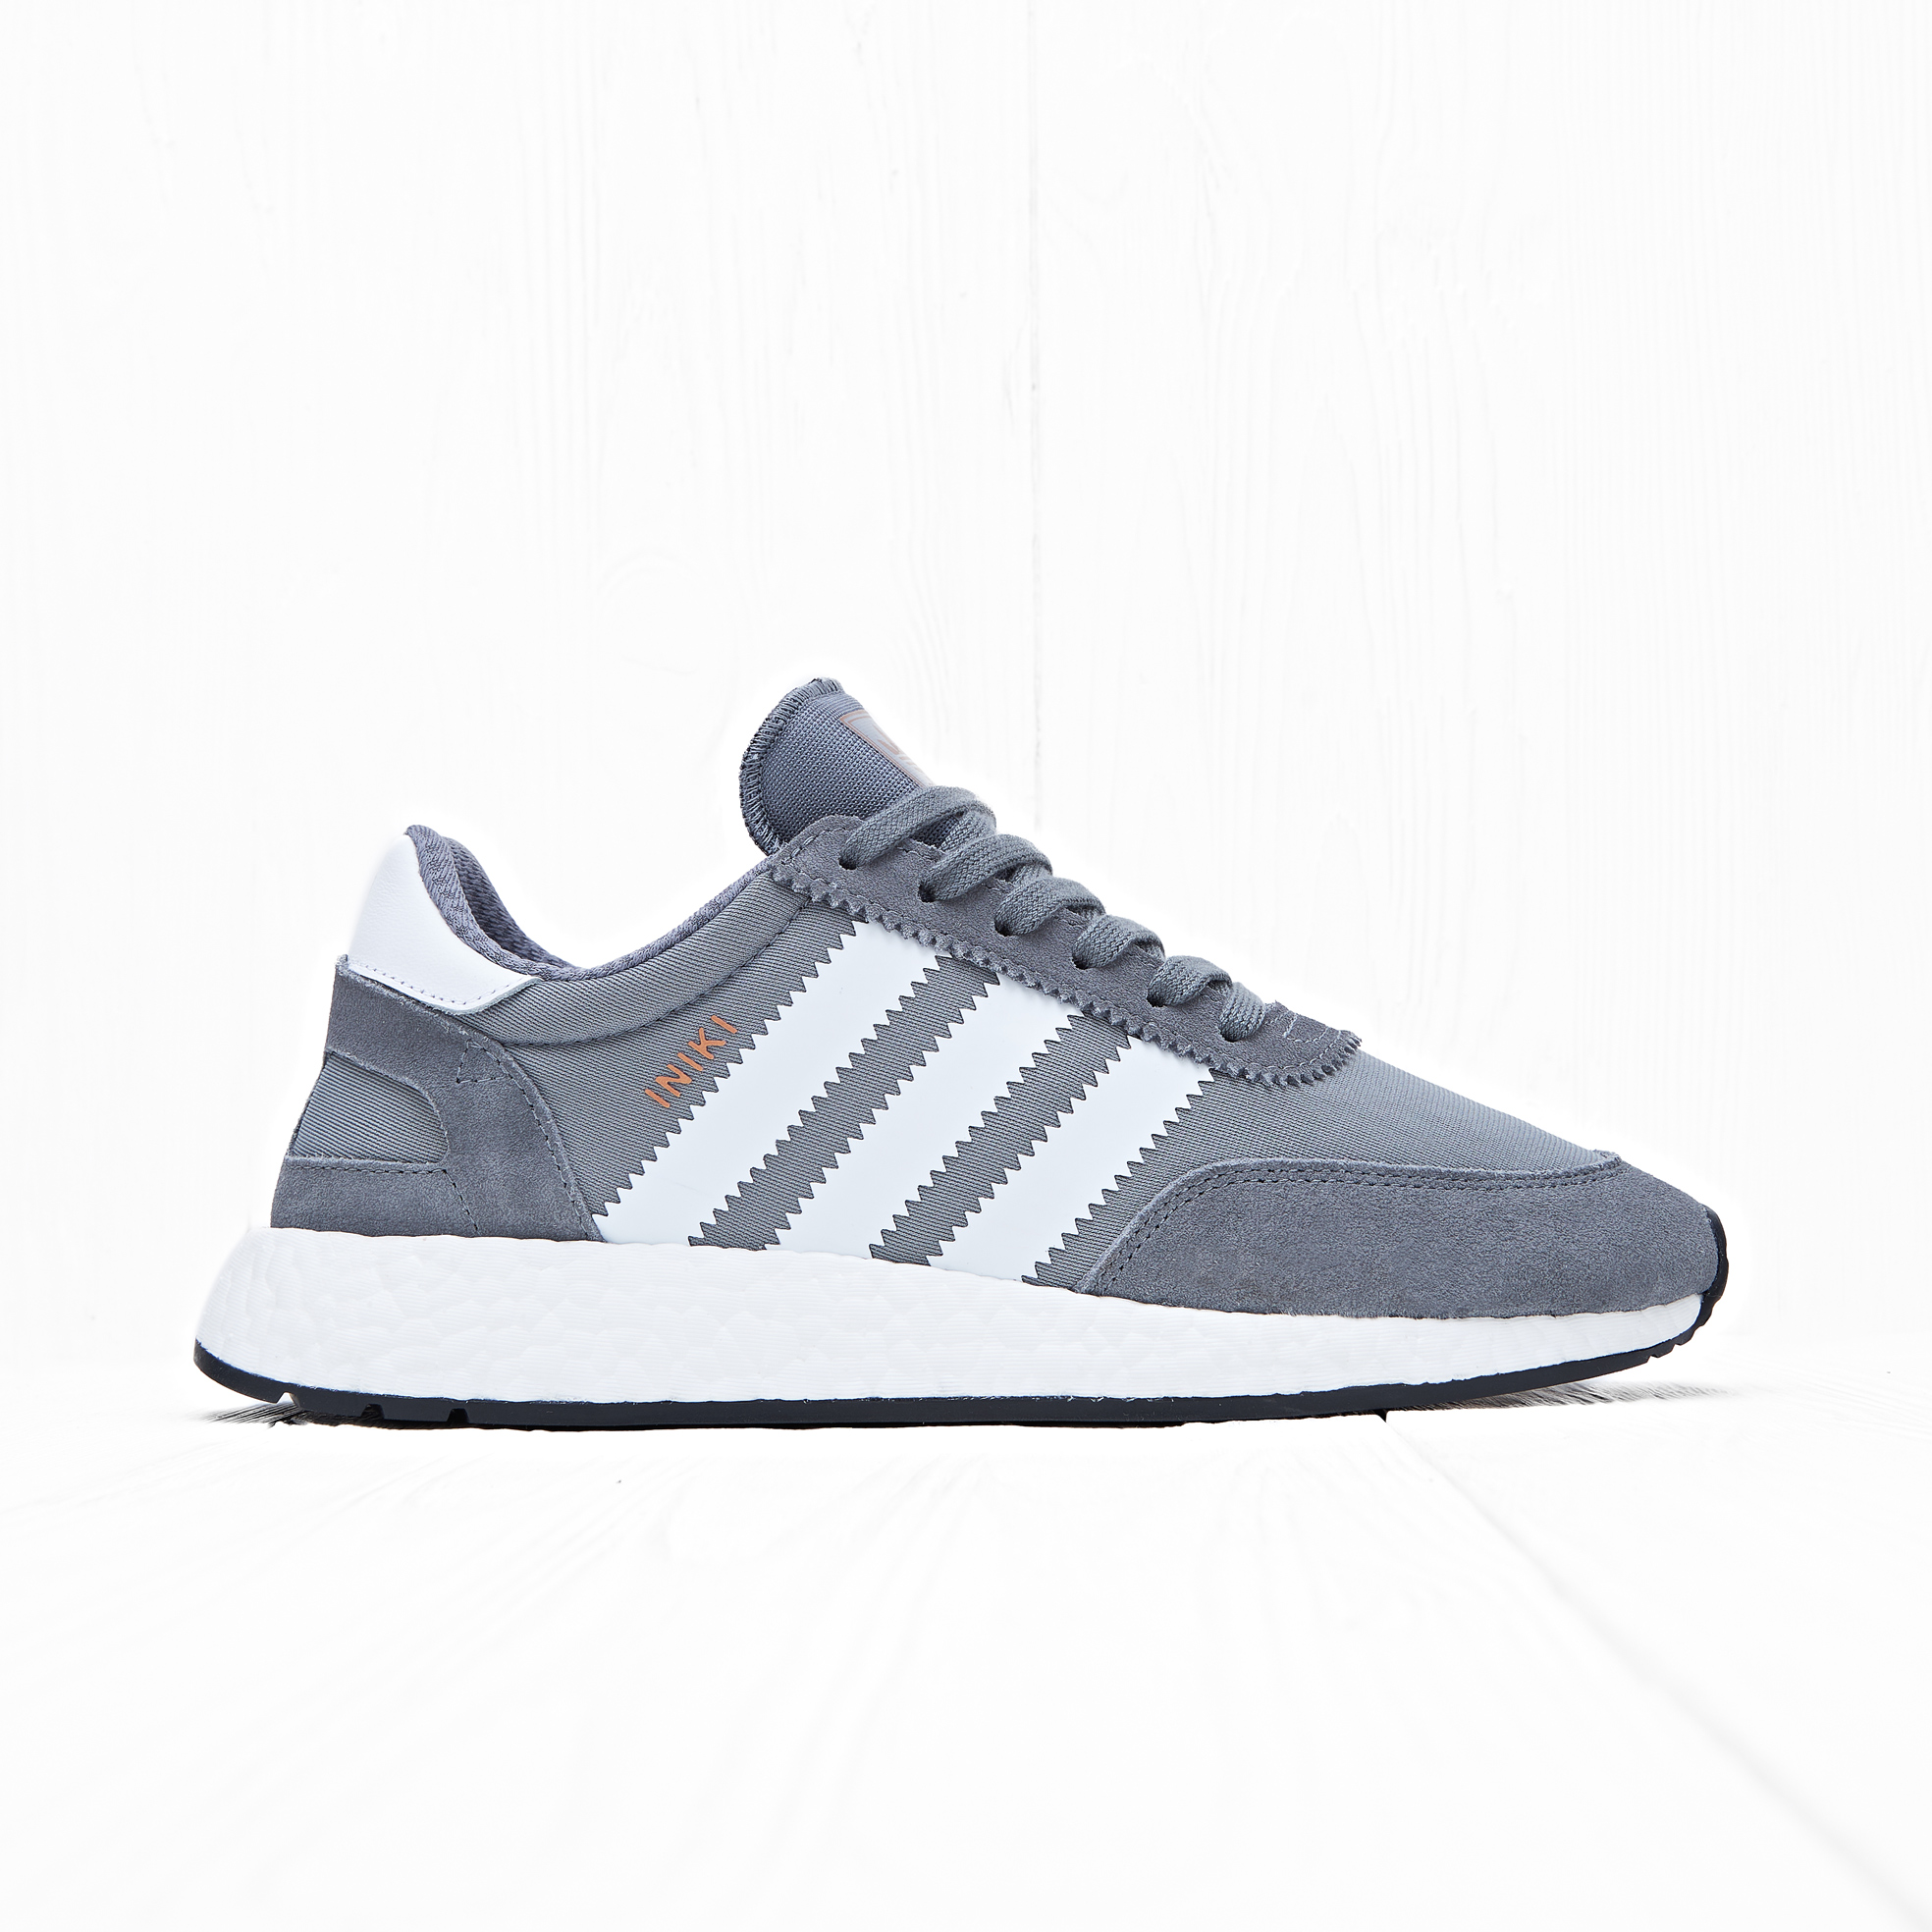 Кроссовки Adidas INIKI RUNNER Vista Grey/Footwear White/Core Black